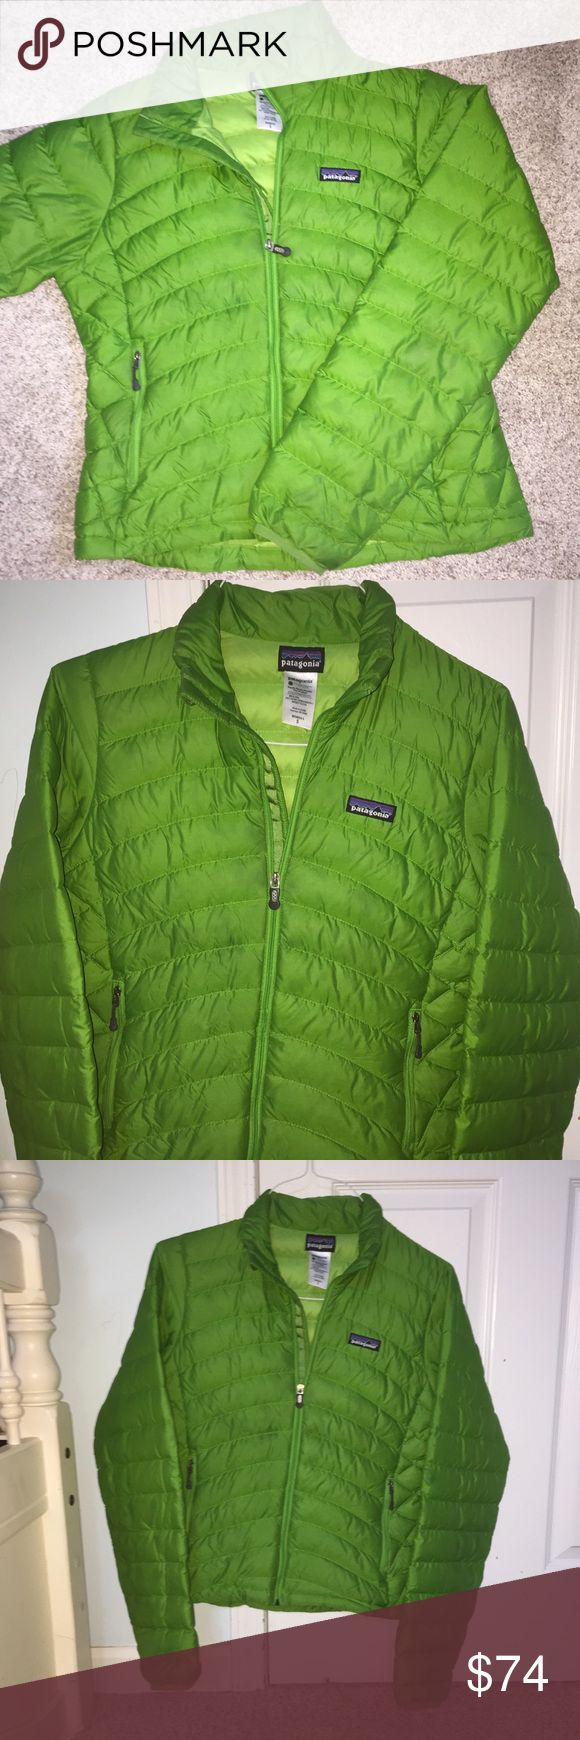 Patagonia puffer down jacket/sweater/winter coat Cute green color- Patagonia warm winter puffer jacket. Great used condition. Originally about 200 dollars. Keeps you super warm. Awesome quality. If you have questions feel free to ask:) I am selling but also looking to trade for a black one! Patagonia Jackets & Coats Puffers